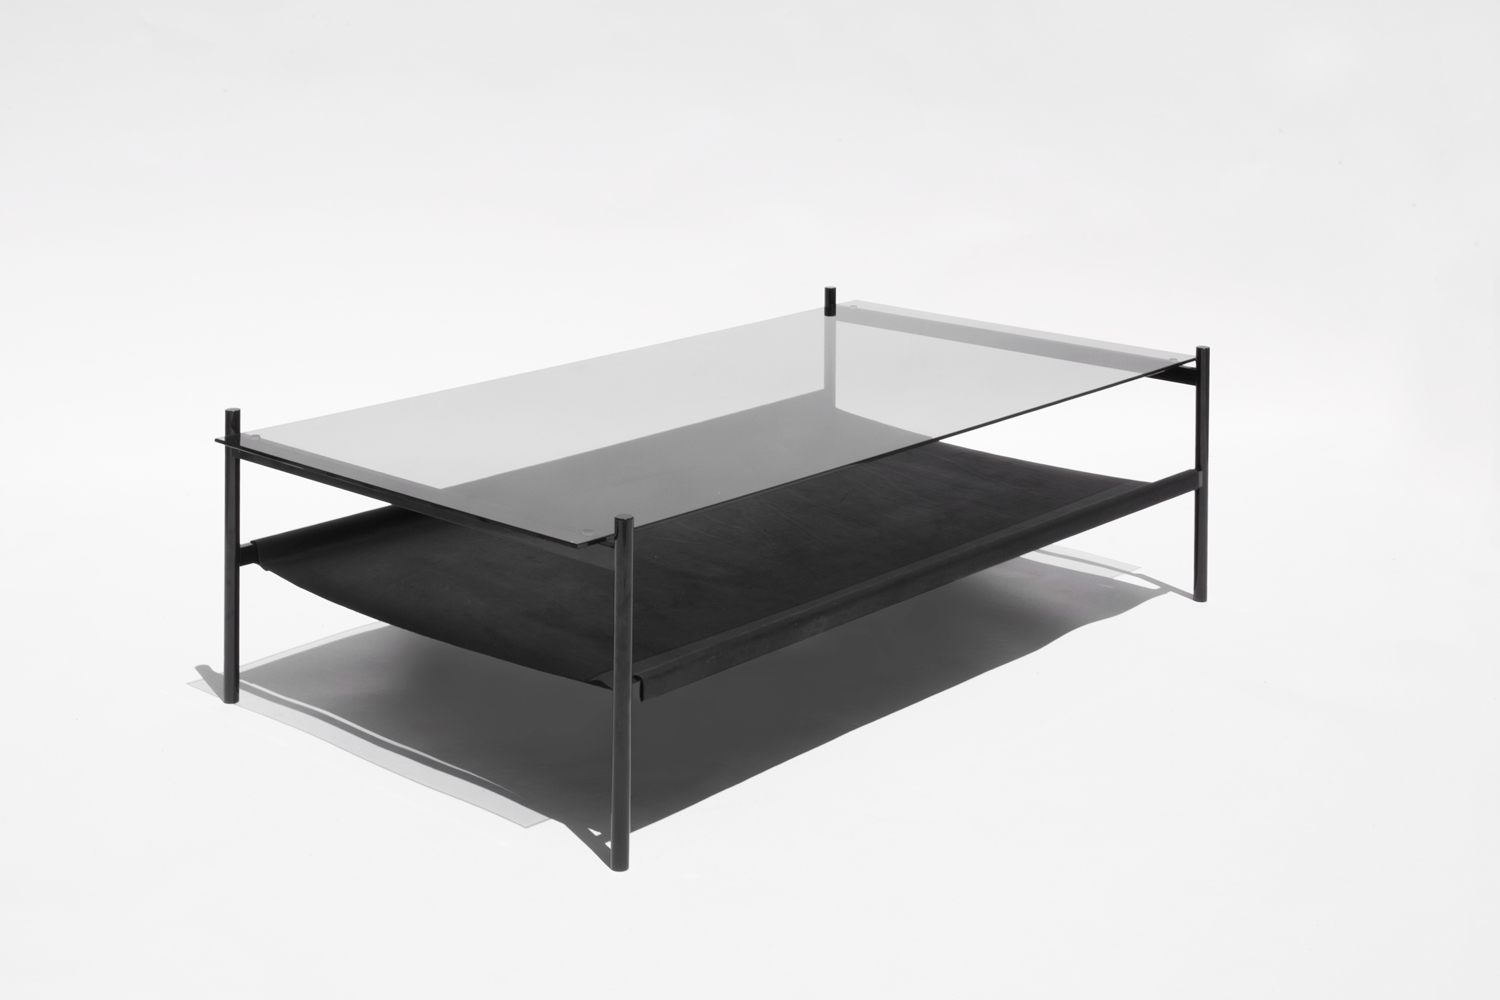 Duotone Rectangular Coffee Table   Black Base / Smoked Glass / Black  Leather Sling